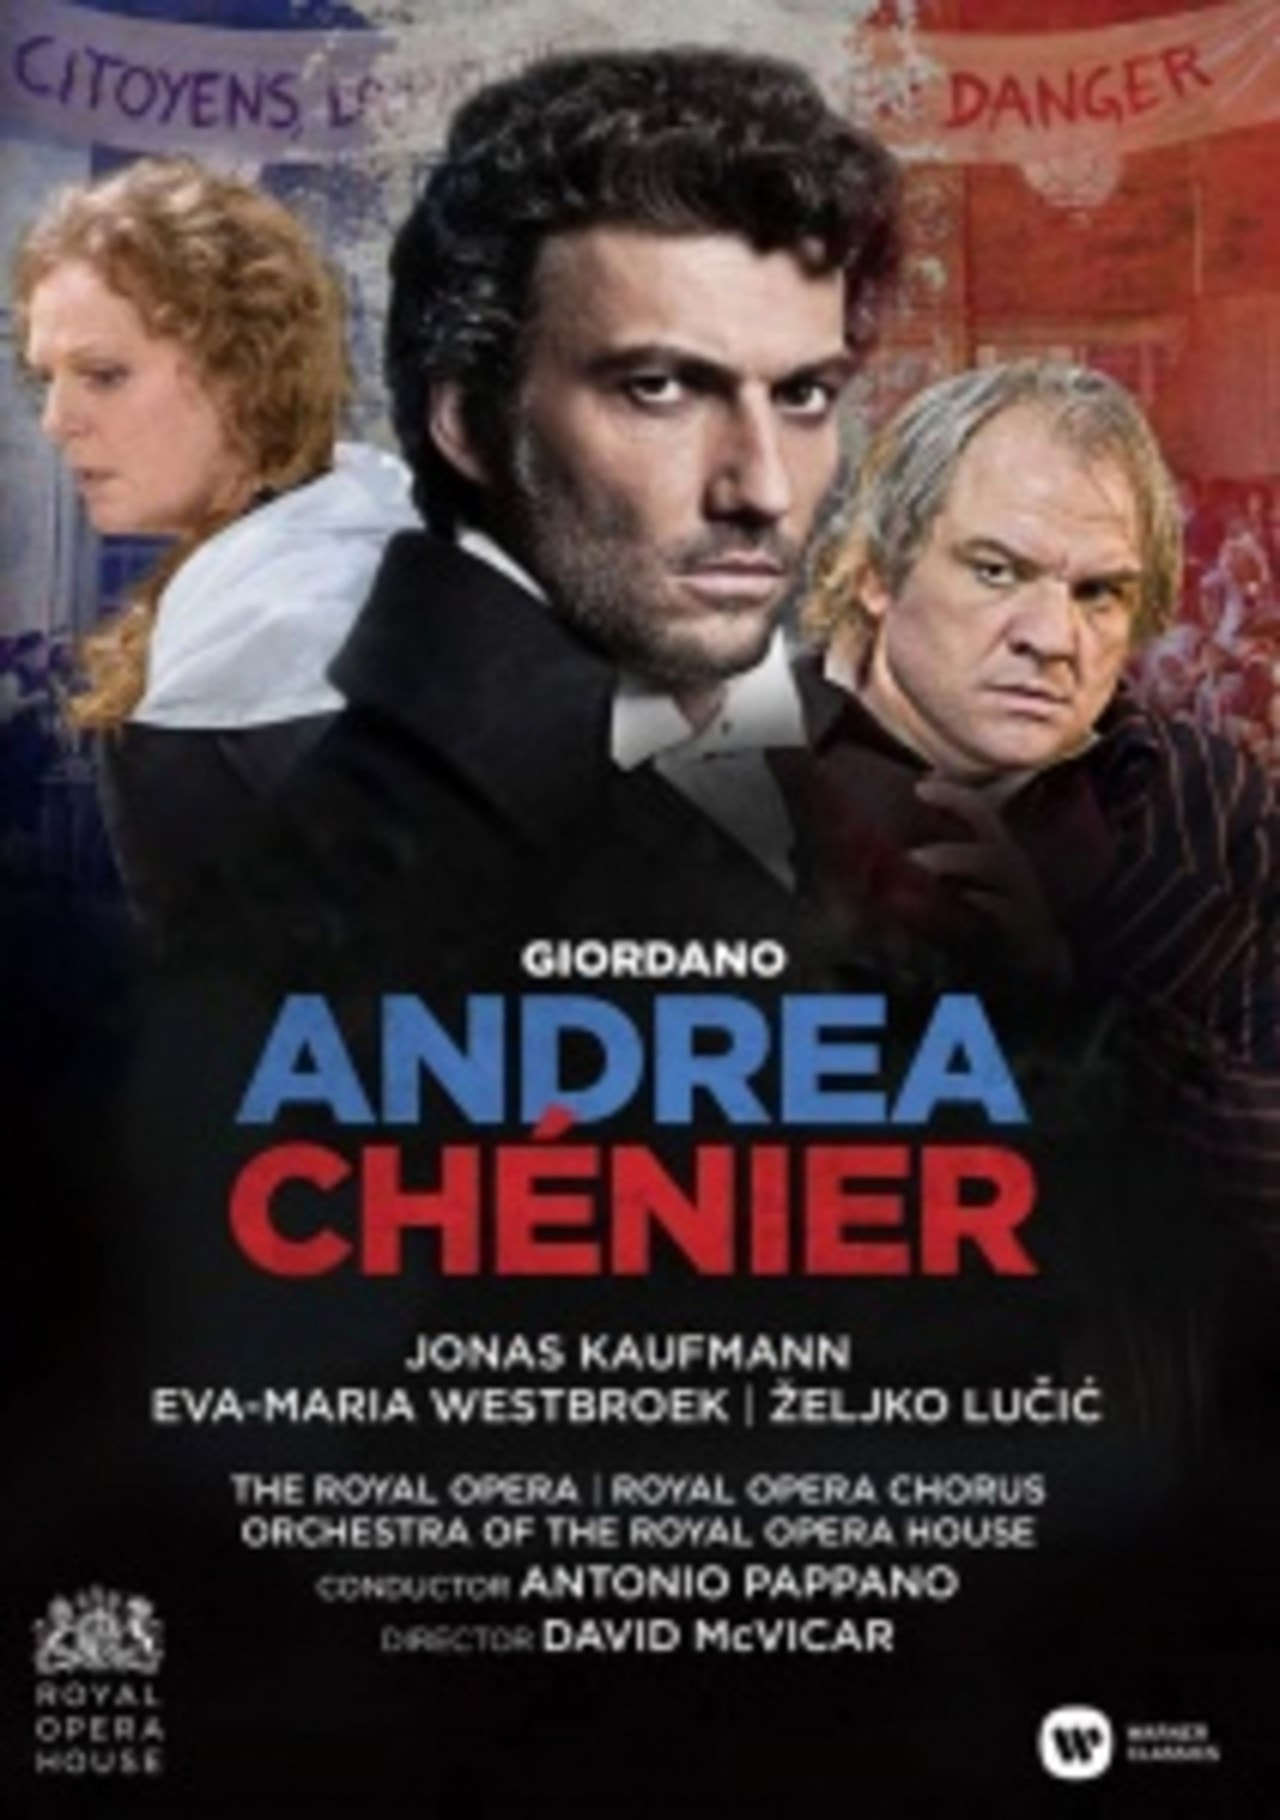 Andrea Chenier: The Royal Opera (Pappano) - 1